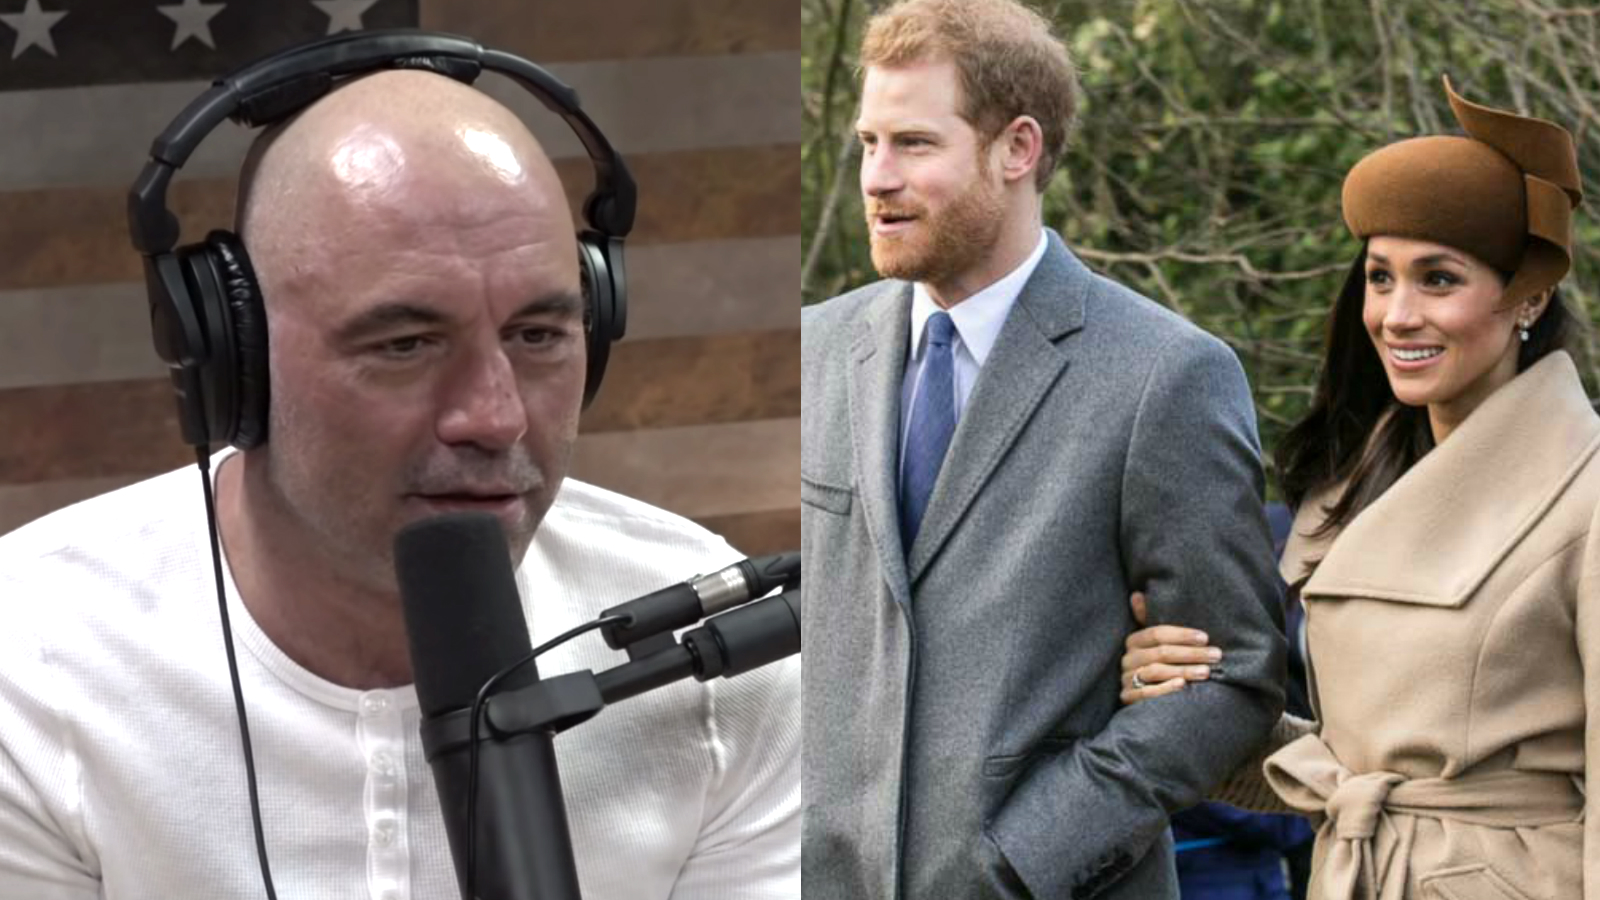 Joe Rogan on YouTube podcast discussing Prince Harry and Meghan Markle leaving Royal Family